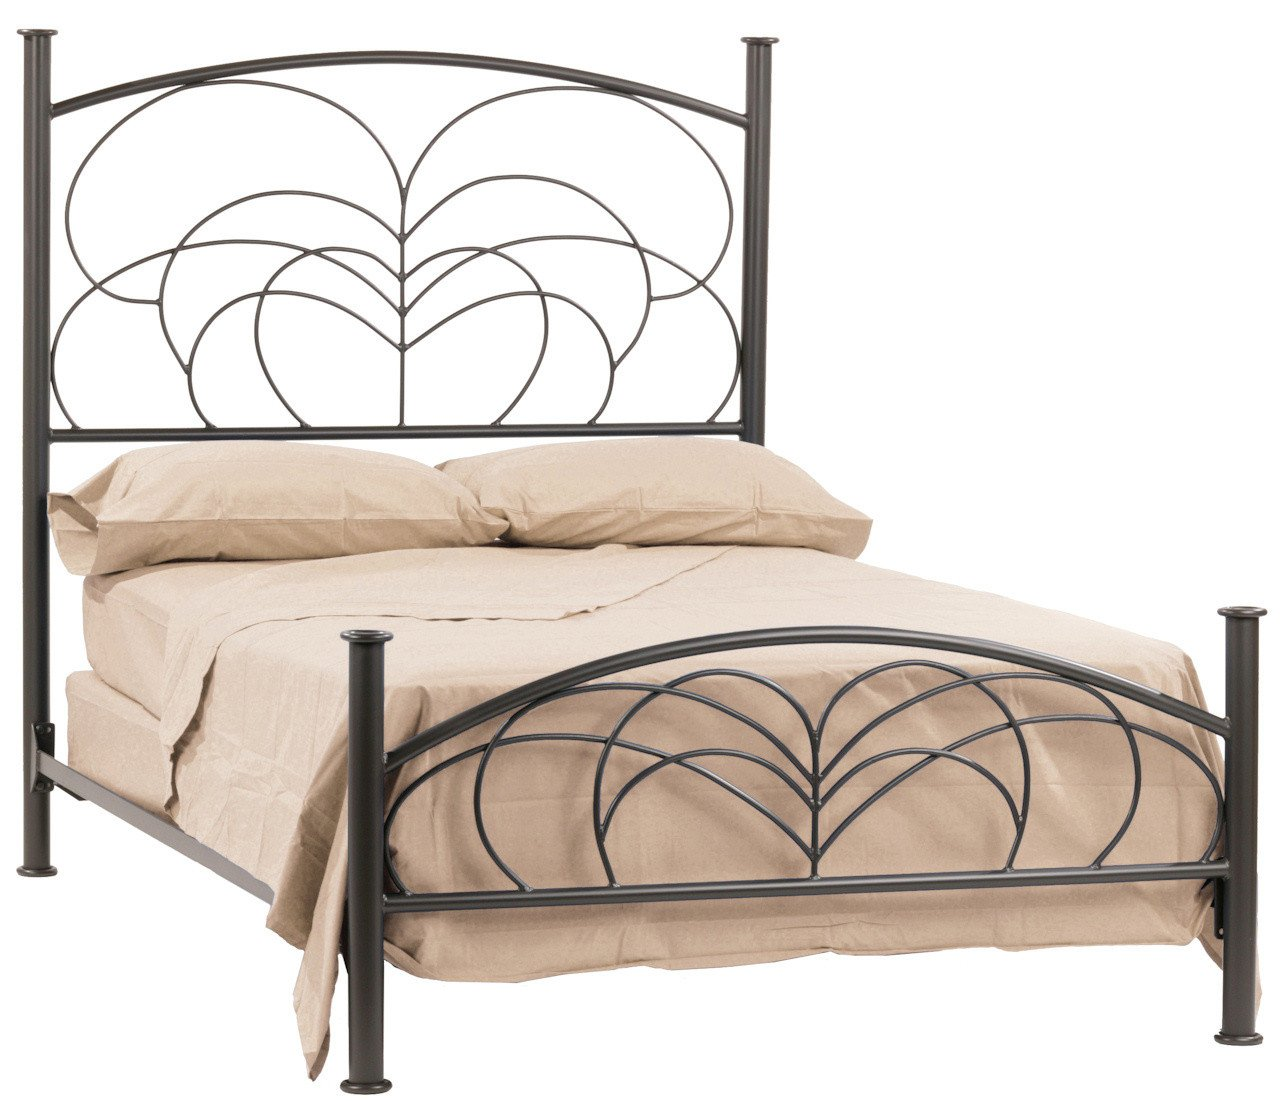 Queen Bed 12155 Product Photo